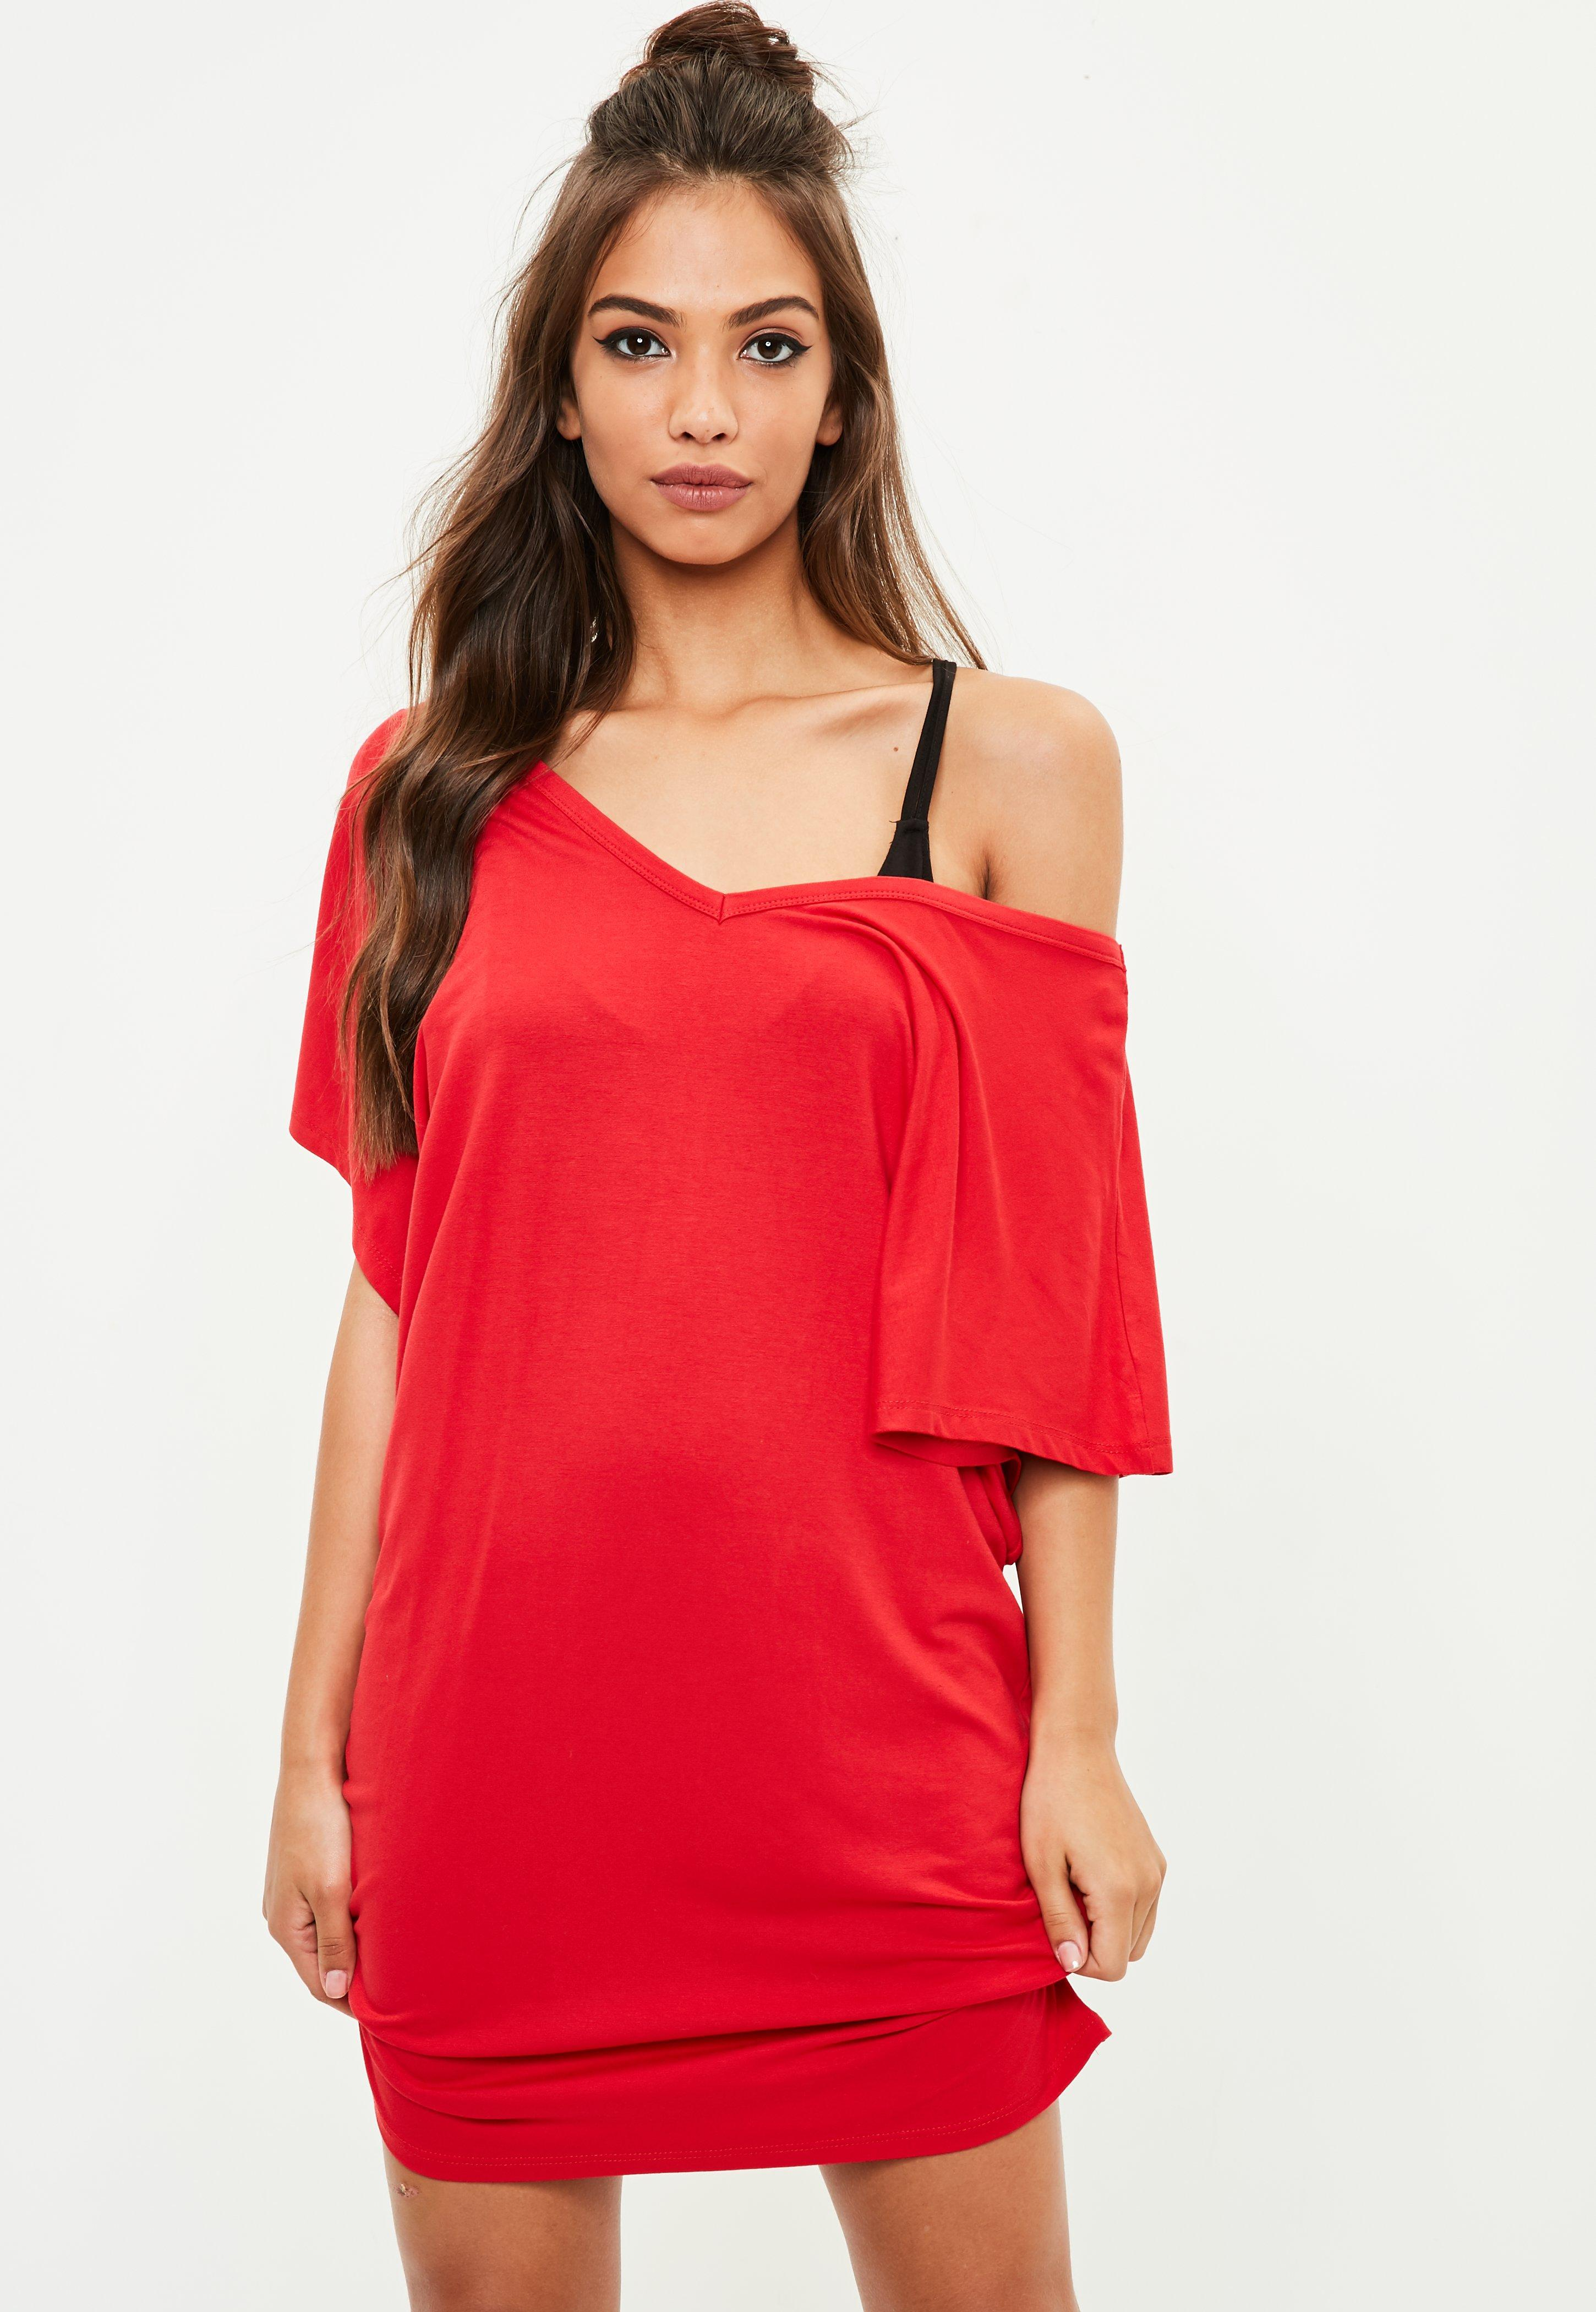 Best Selling V Back T-Shirt Dress - Red Missguided For Cheap Discount XE3fa